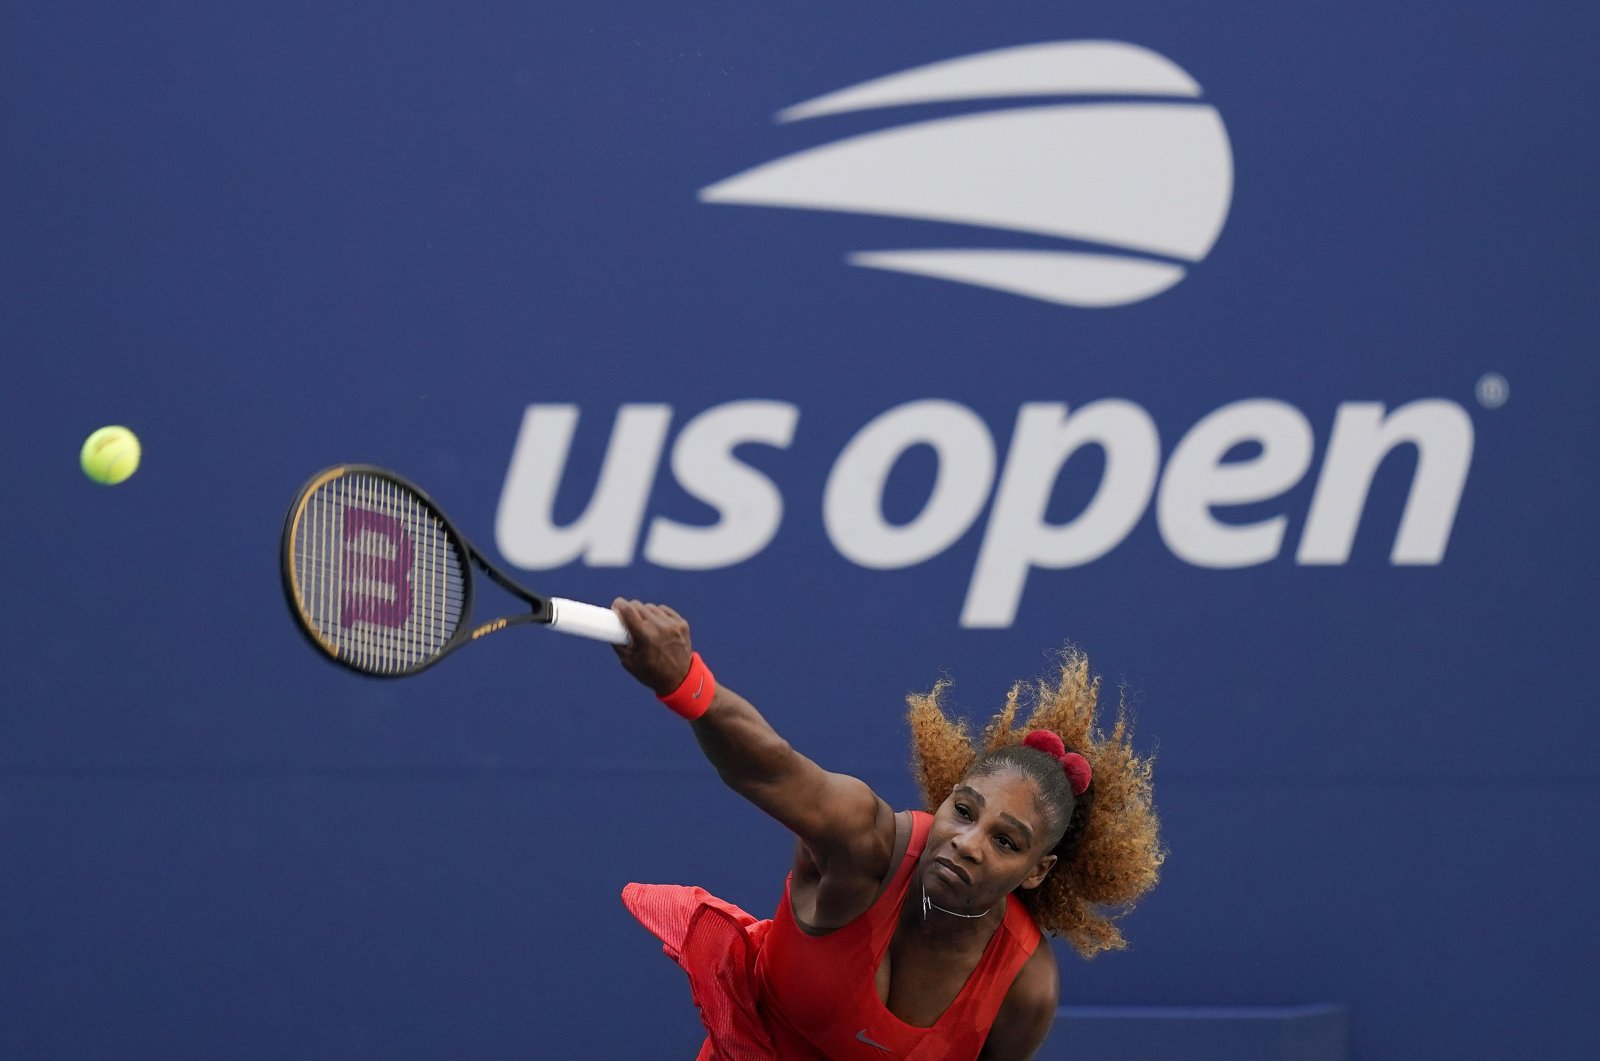 Serena Williams serves to Sloane Stephens during the third round of the U.S. Open tennis championships, New York, U.S., Sept. 5, 2020. (AP Photo)